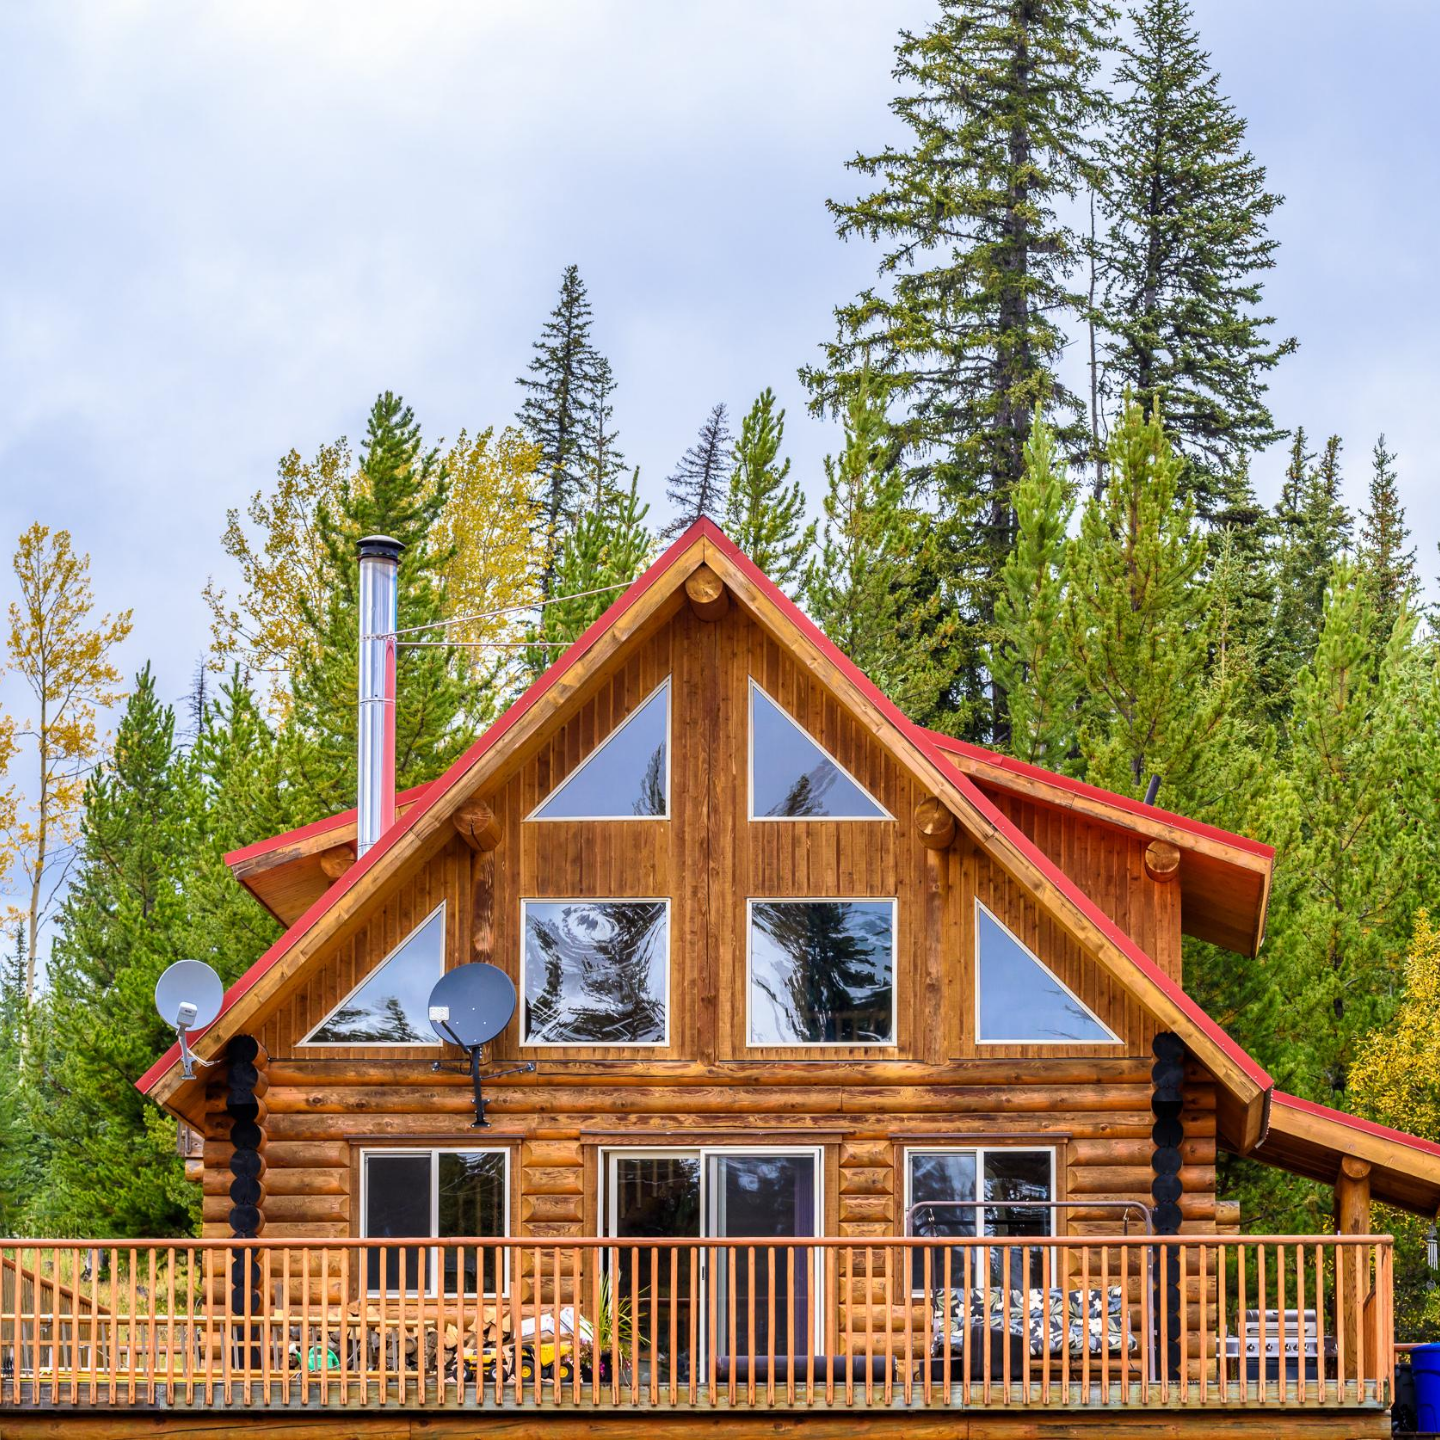 The 8 Best Log Cabin Kits Prices On The Market Right Now 2020 Log Cabin Kits Small Log Cabin Kits Log Cabin Kits Prices